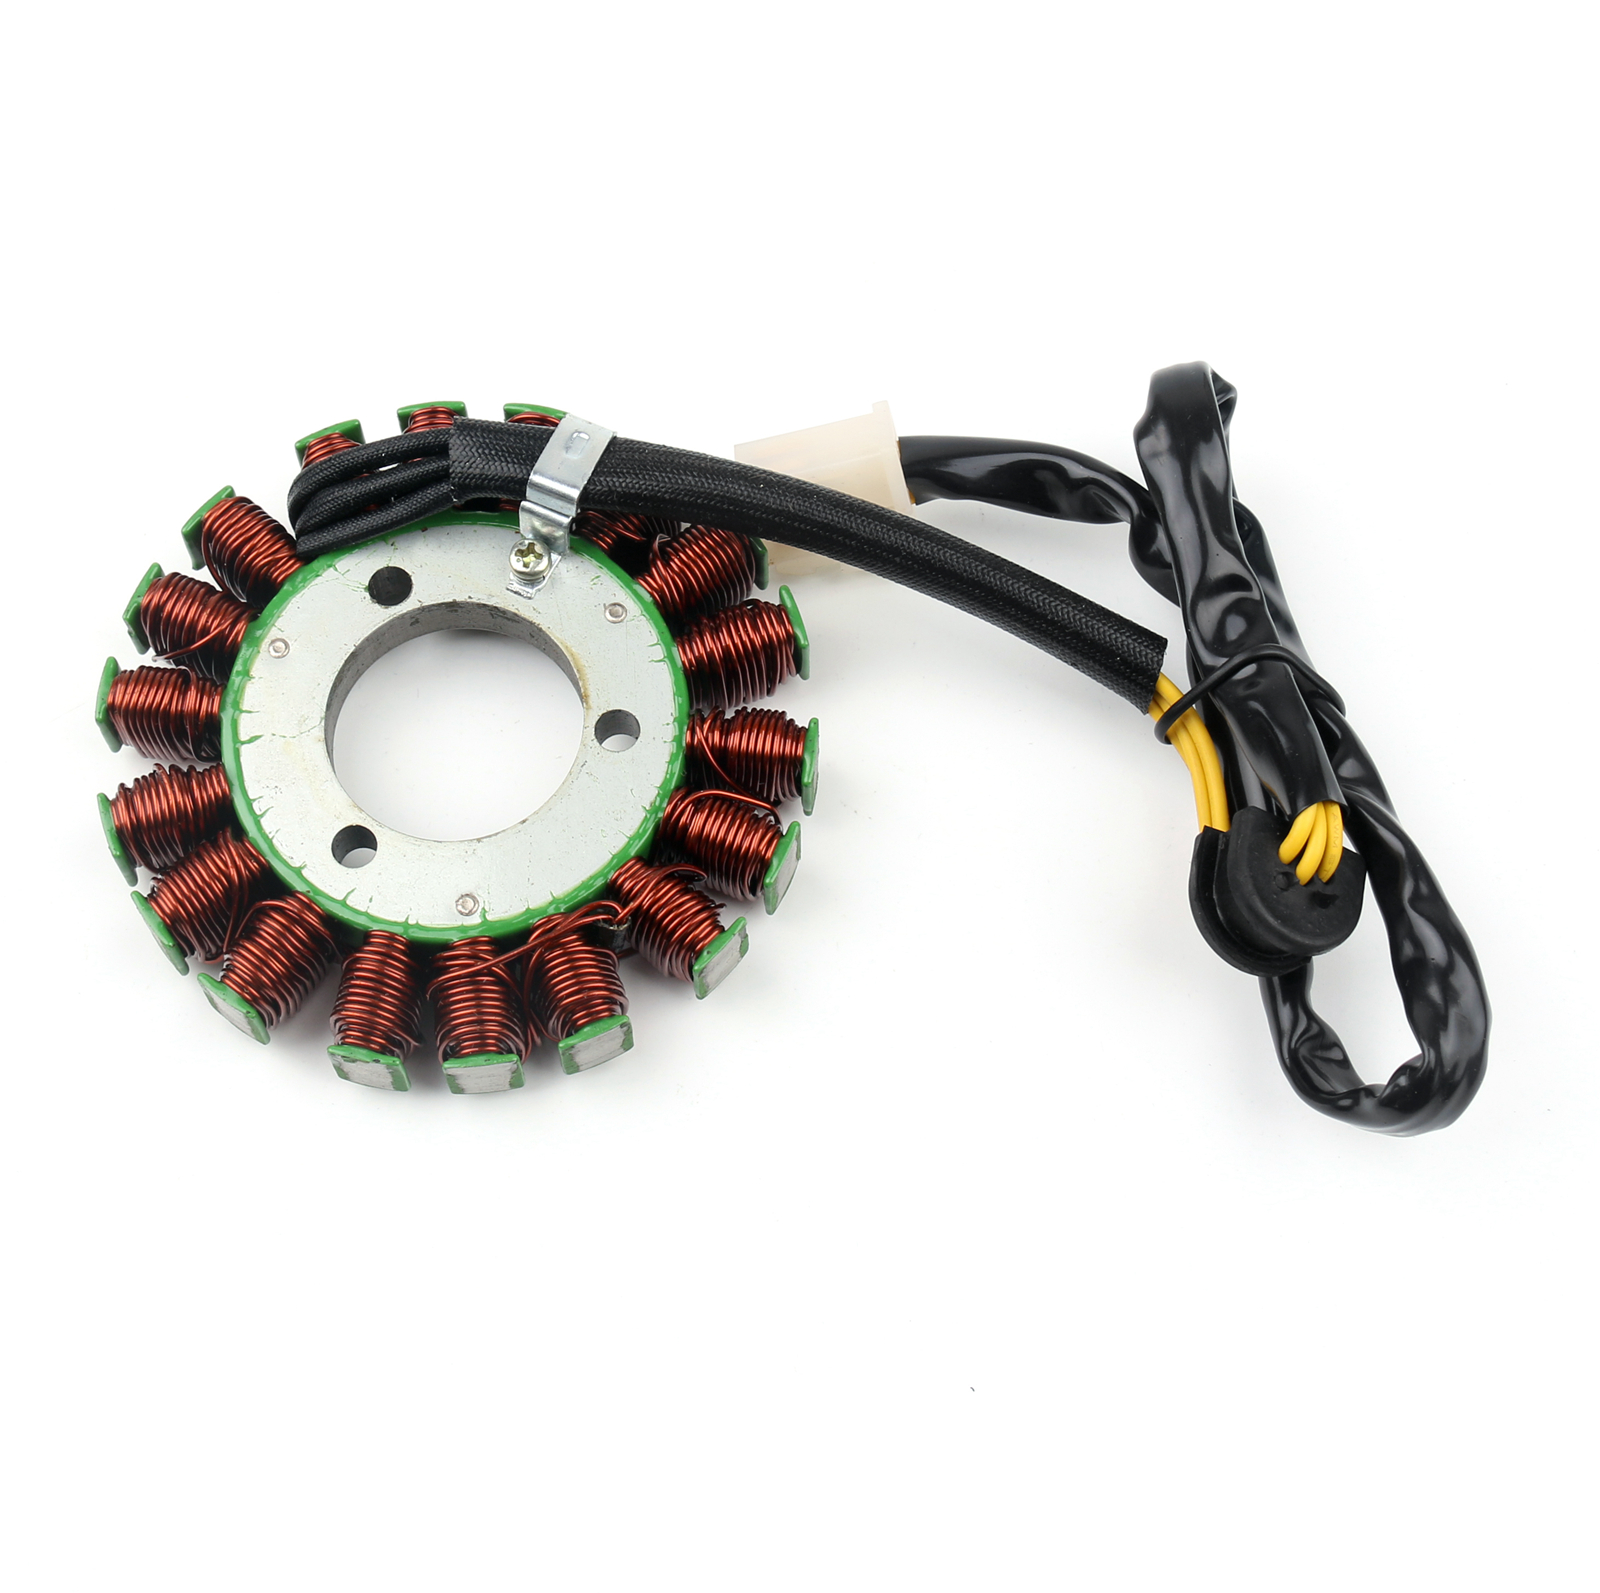 hight resolution of  gsxr 600 engine diagram magneto engine stator generator charging coil for suzuki